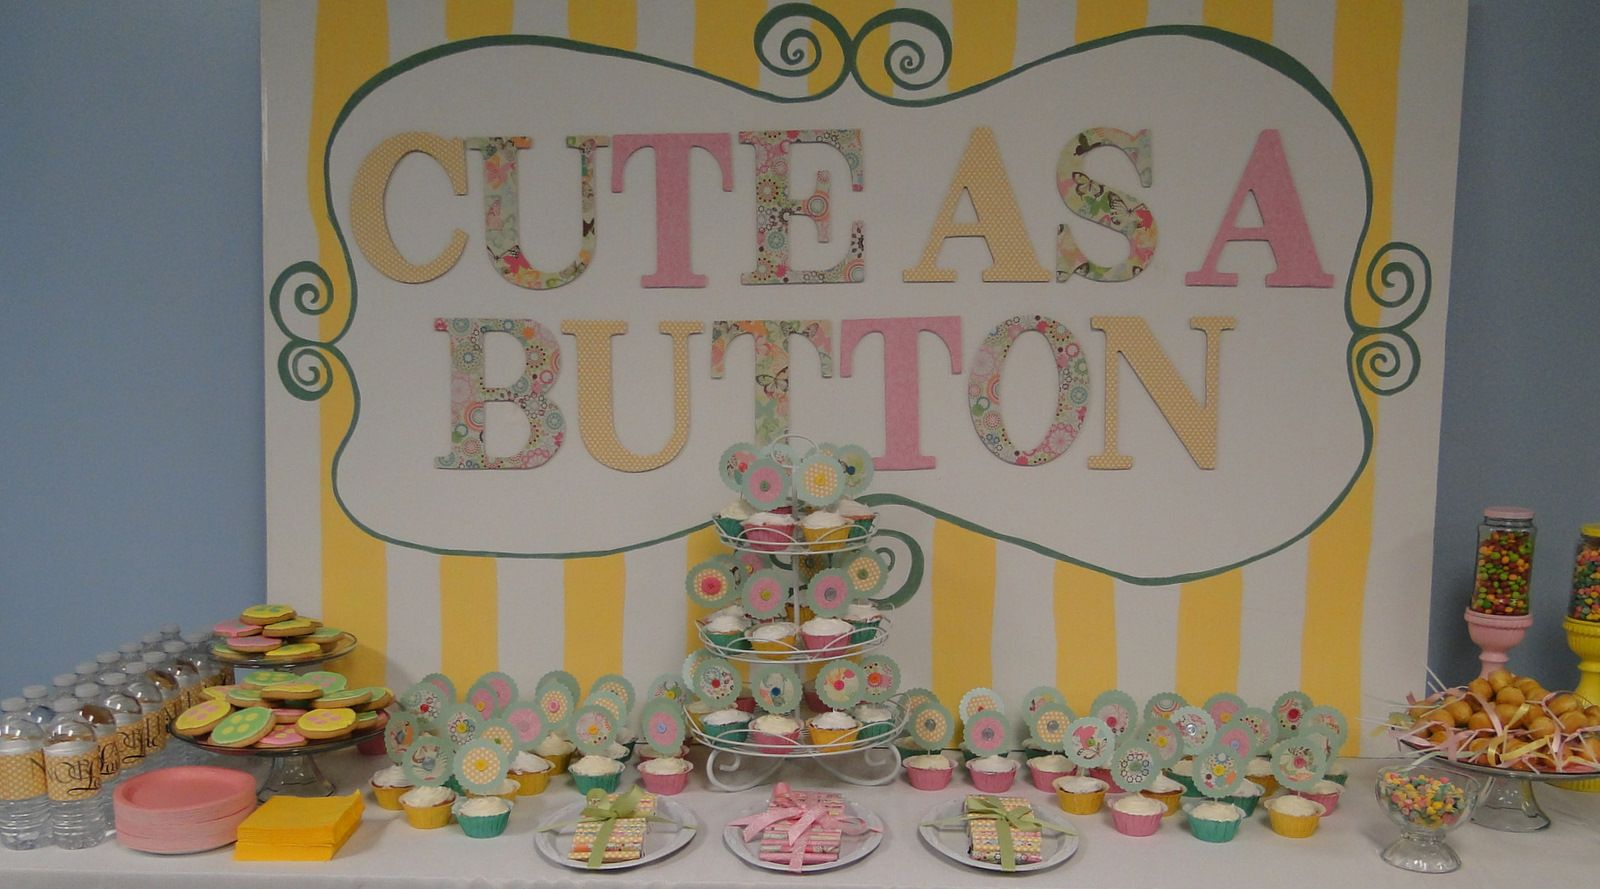 Cute As A Button Baby Shower Theme   Had Painted The Backdrop. The Letters  Are Just Wood Craft Letters .